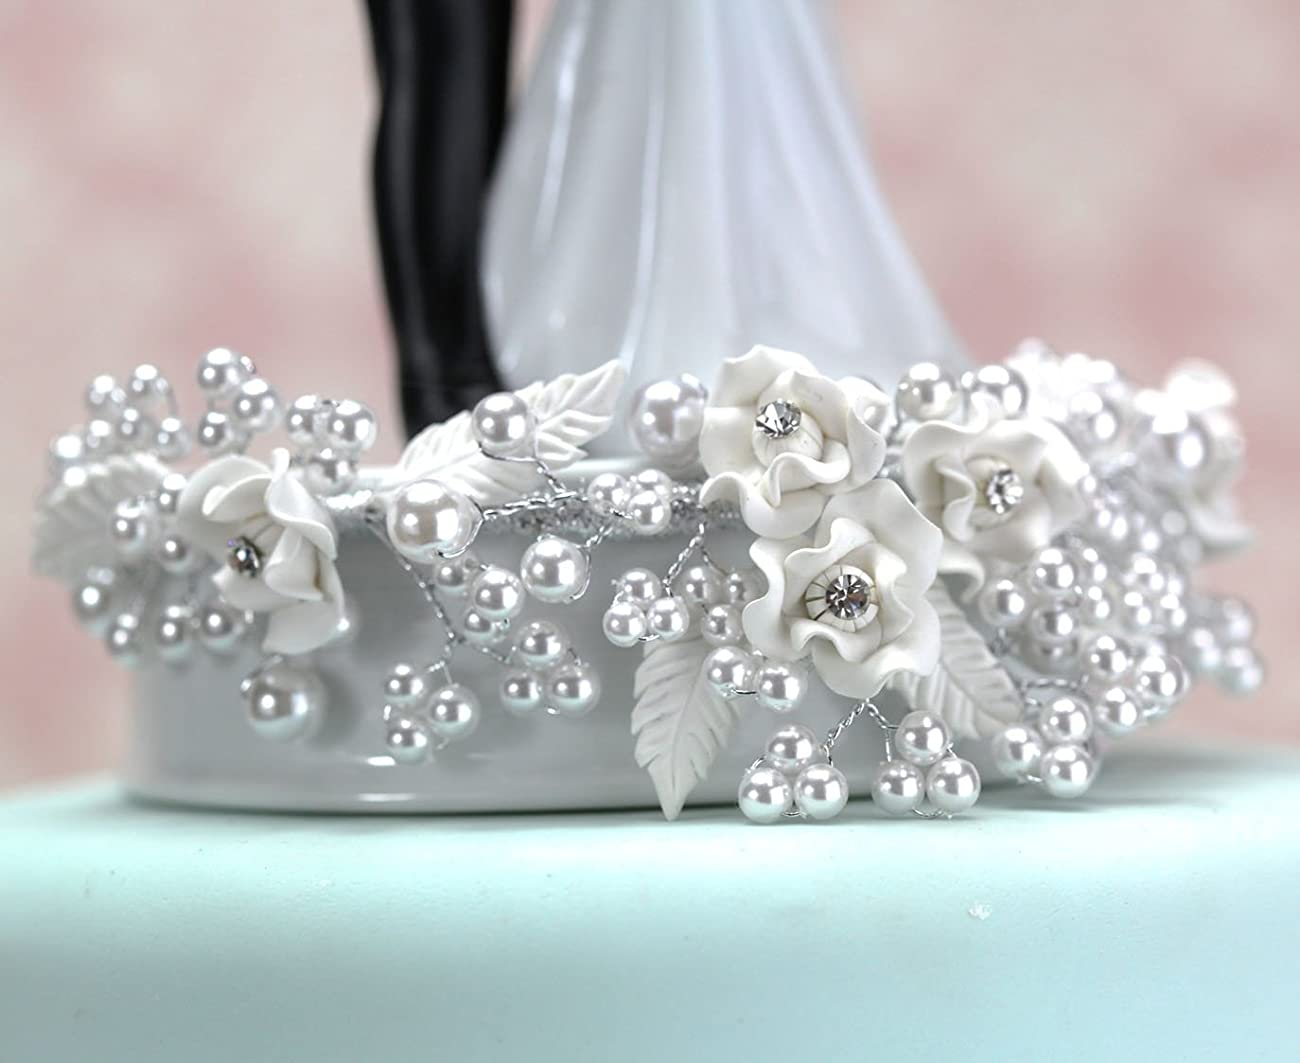 White and Silver Vintage Rose Pearl Wedding Cake Topper: Base Color: White with Silver Wiring 3